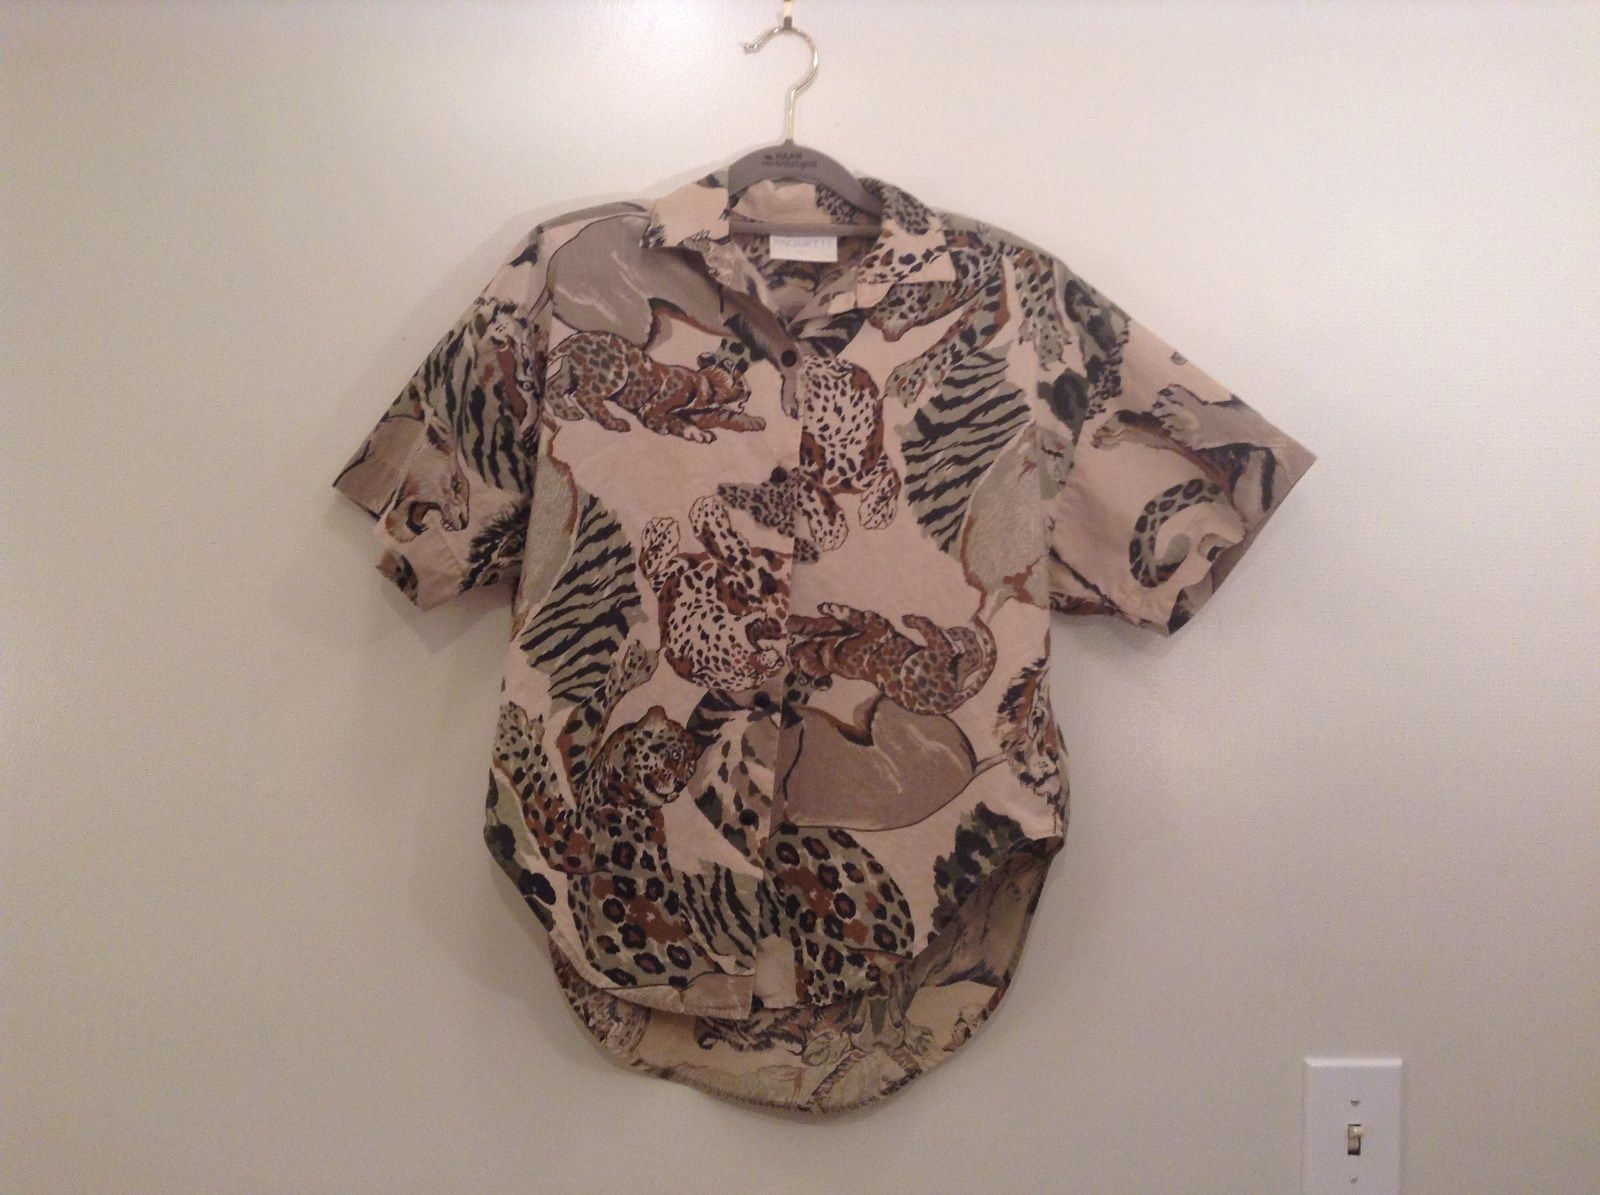 Safari Team Print Animals Brown Gray Short Sleeve Shirt Ms Paquette Size Small